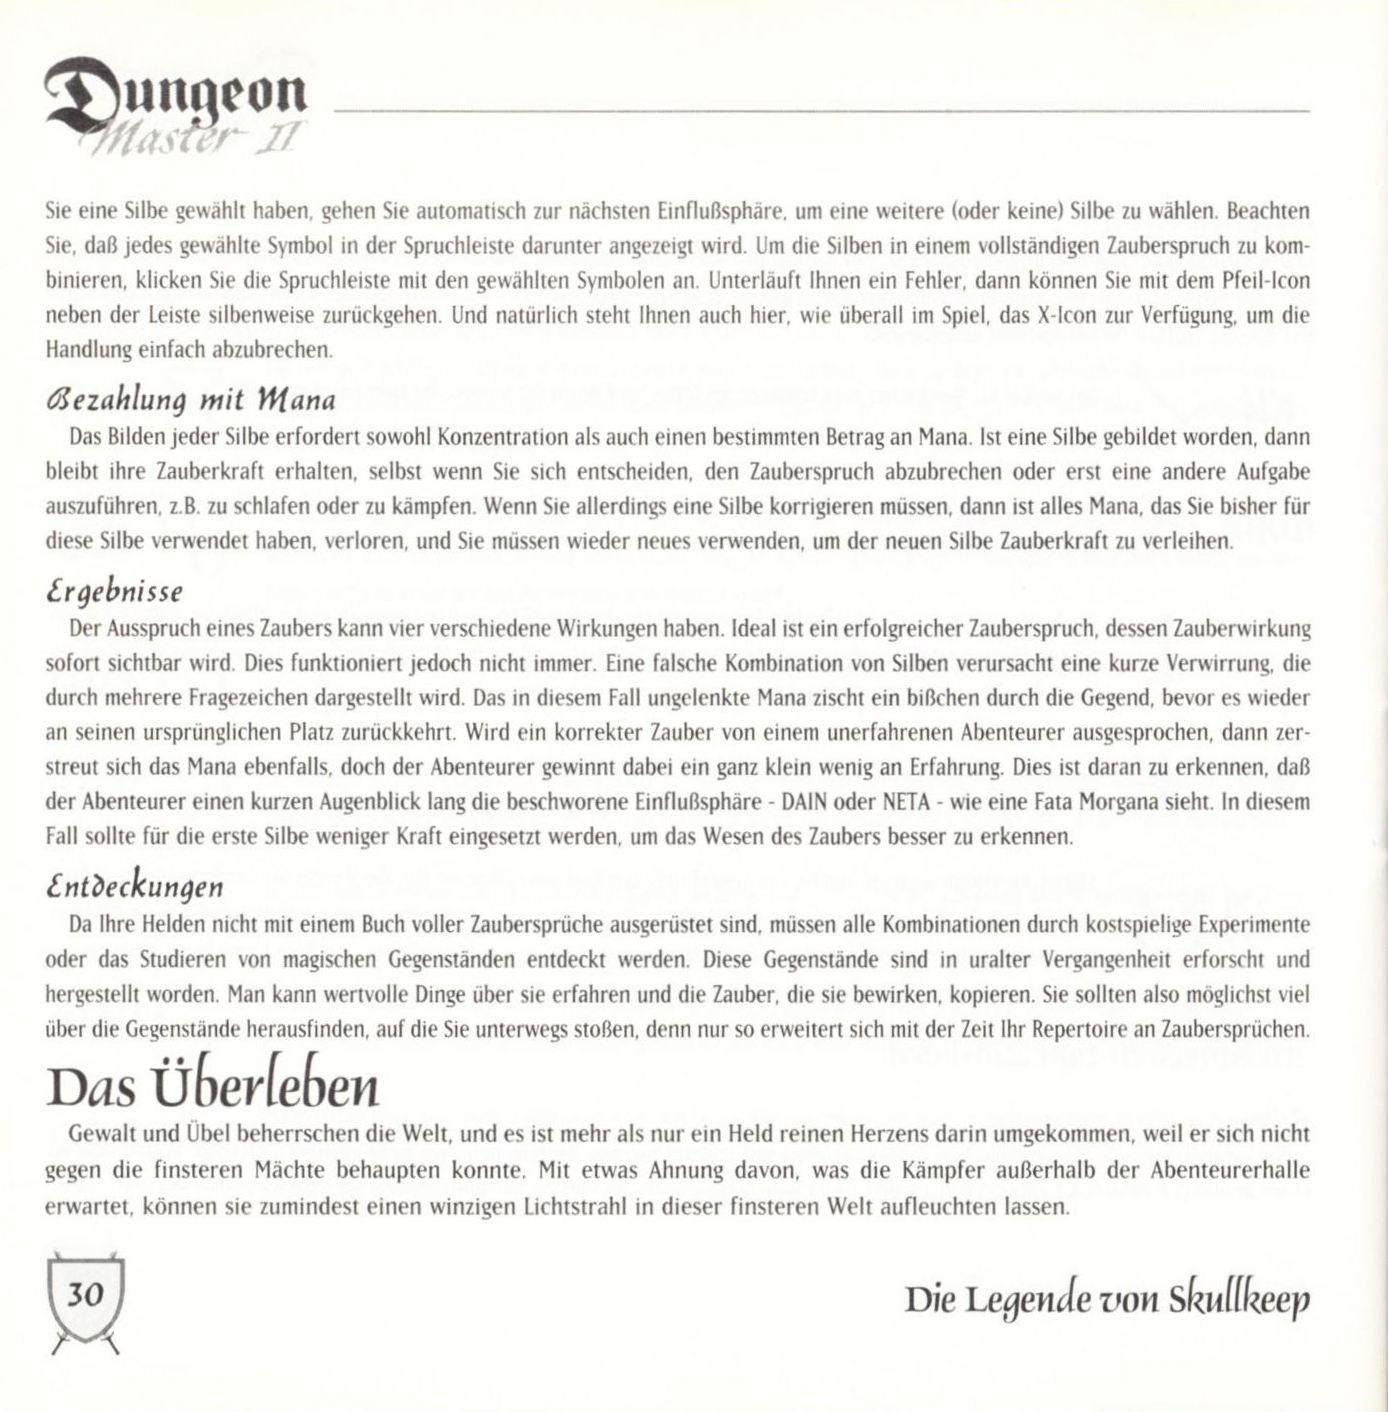 Game - Dungeon Master II - DE - PC - Blackmarket With Booklet - Booklet - Page 032 - Scan